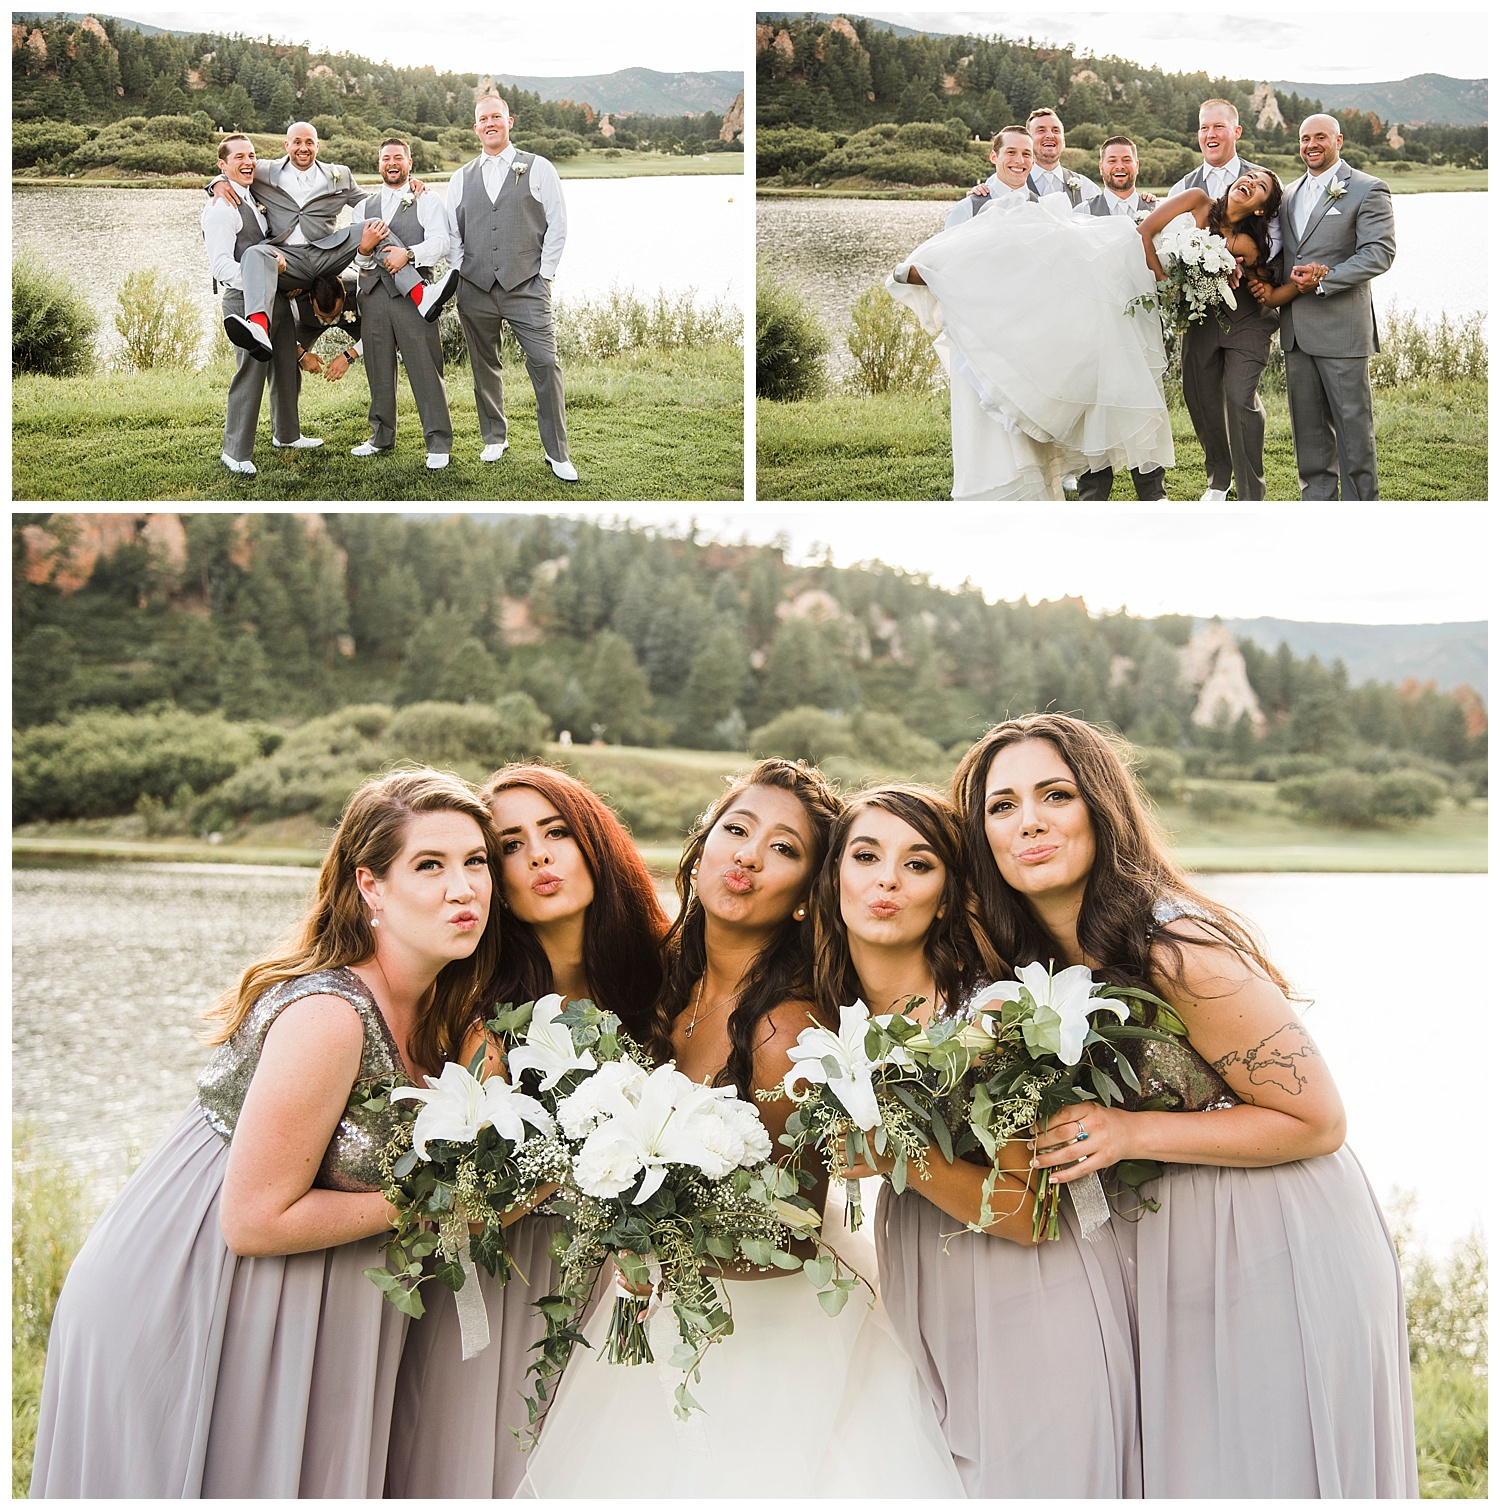 Perry_Park_Country_Club_Wedding_Larkspur_Colorado_Apollo_Fields_29.jpg